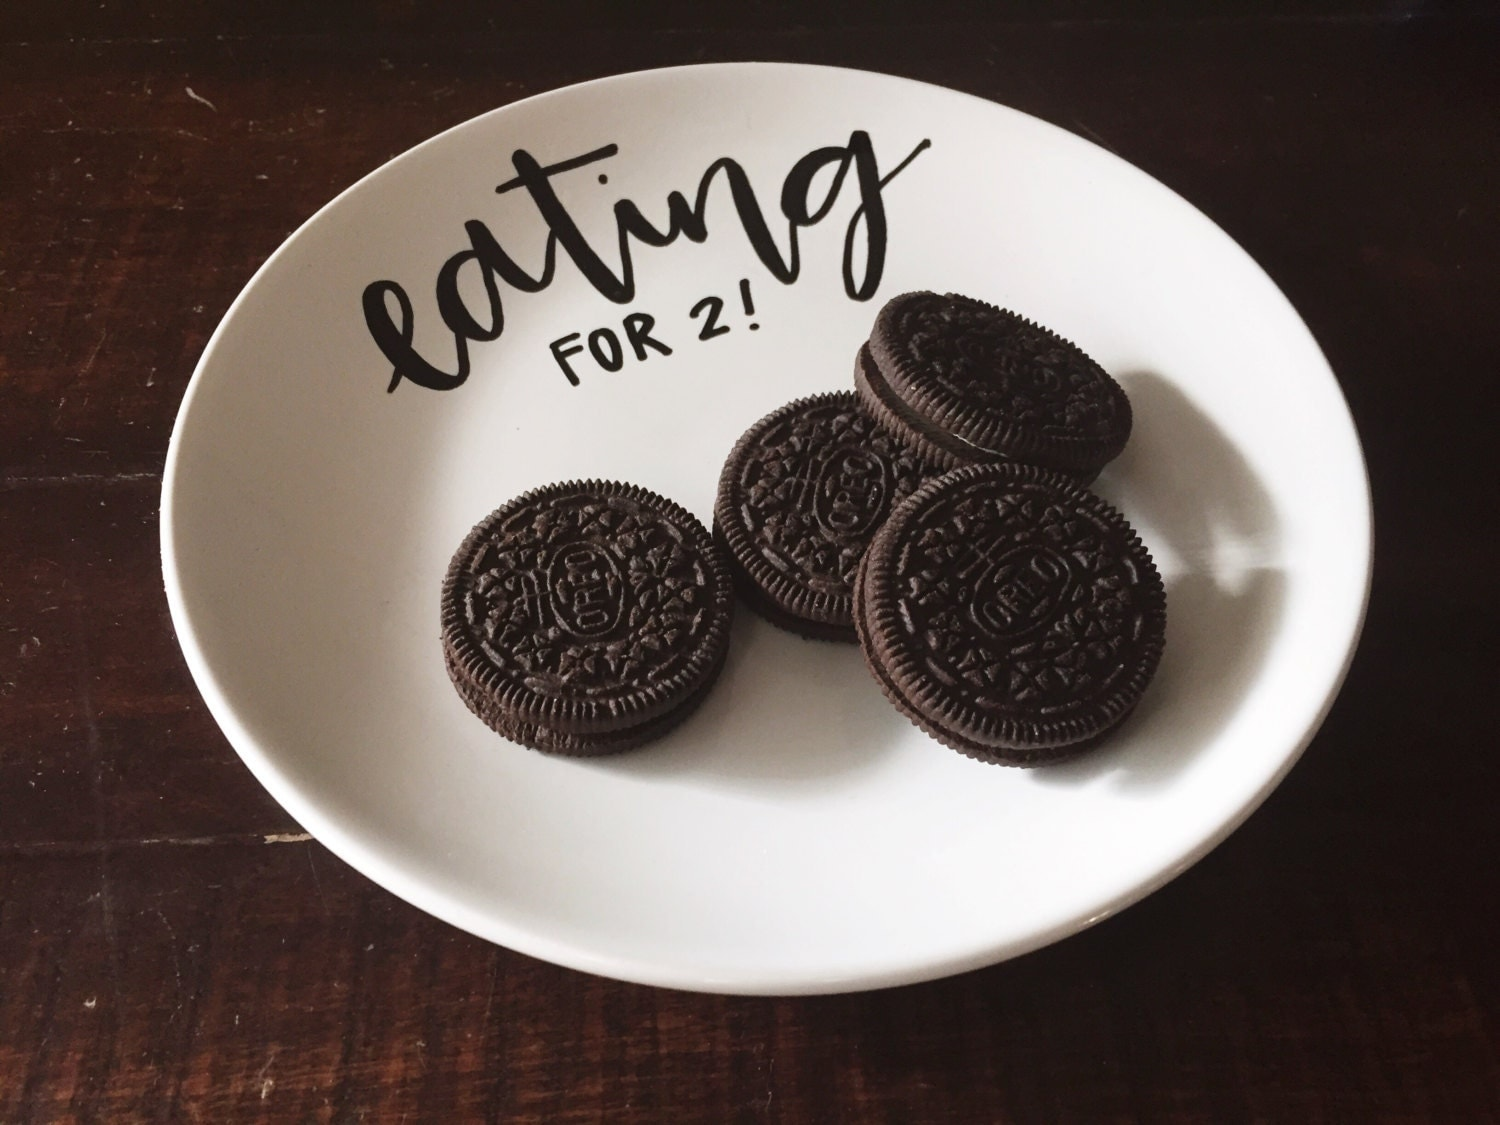 eating for two: pregnancy announcement plate